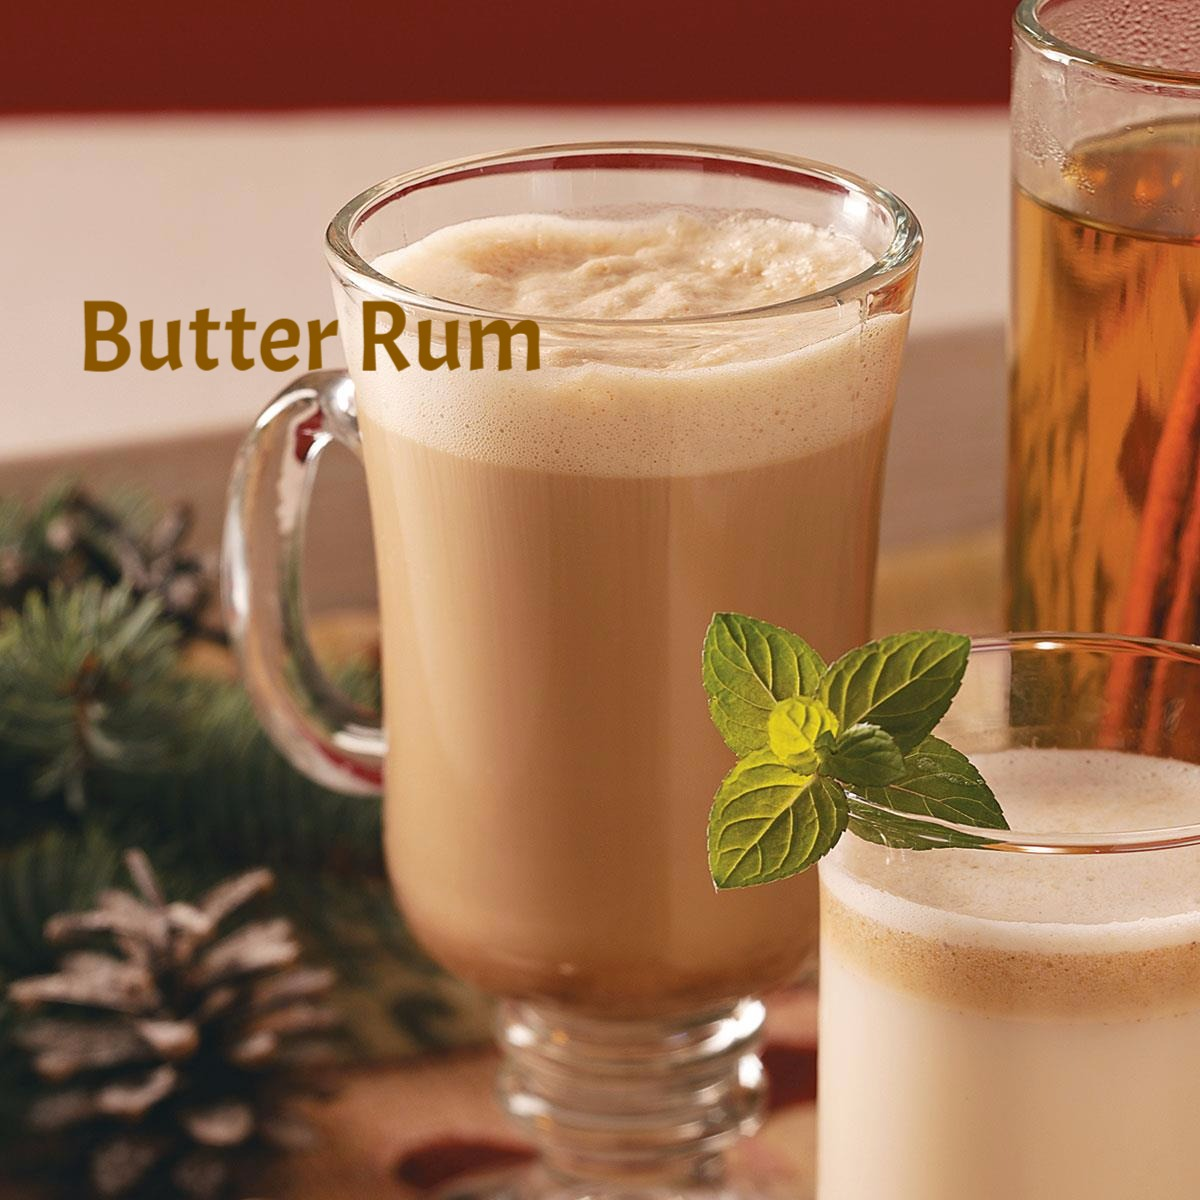 Hot-Buttered-Rum_exps50342_TH1999633A08_02_1bC_RMS_edited